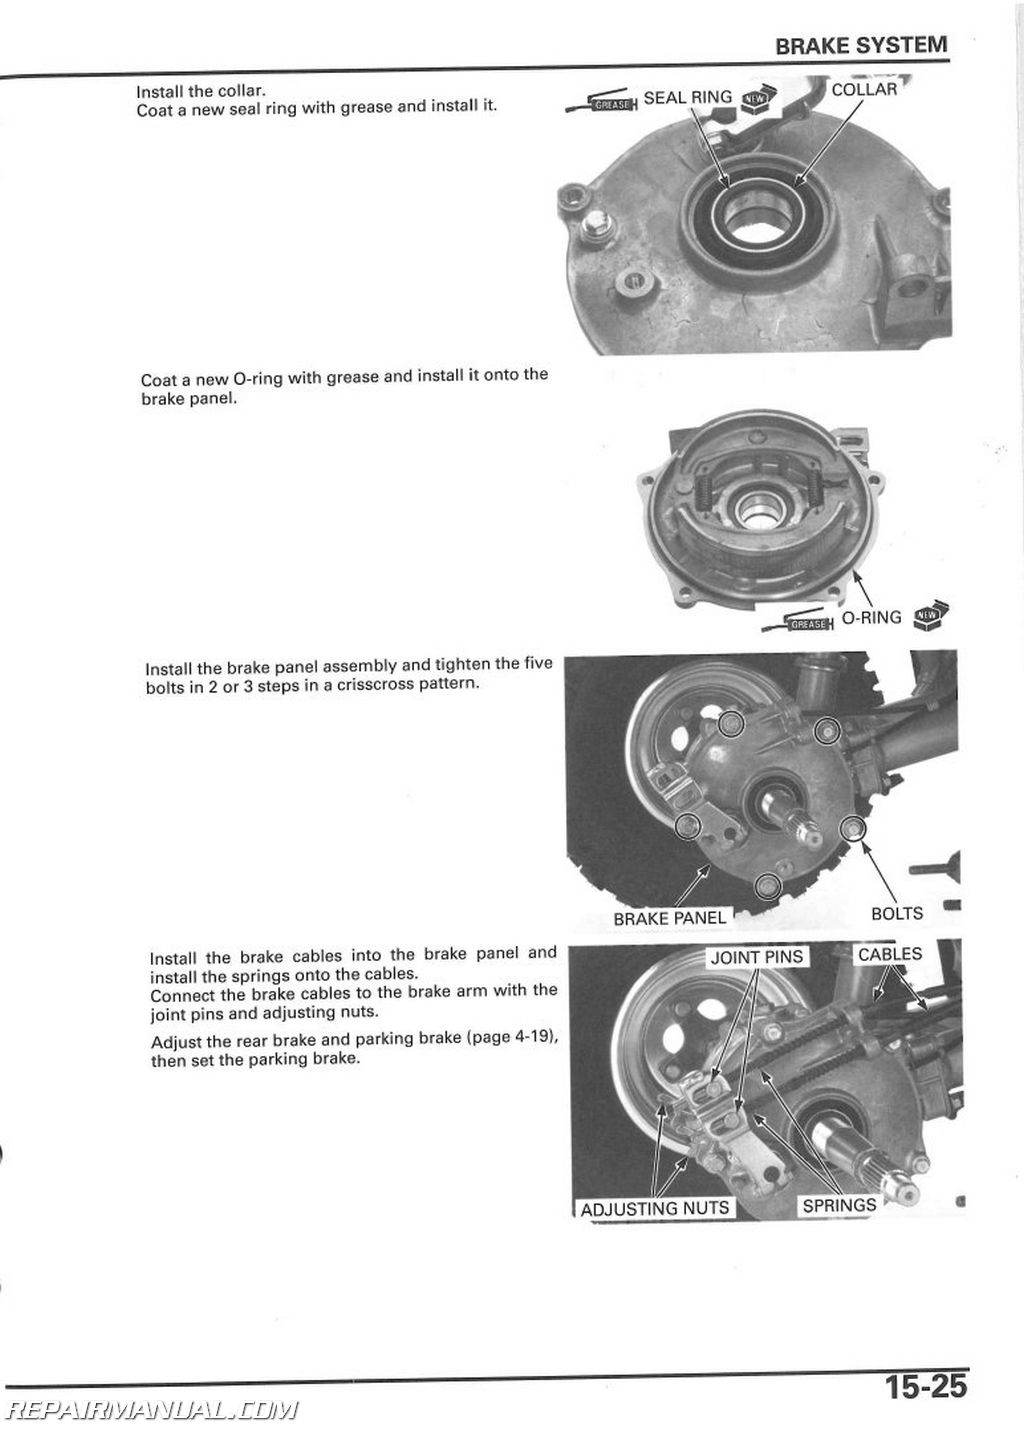 free honda recon 250 repair manual